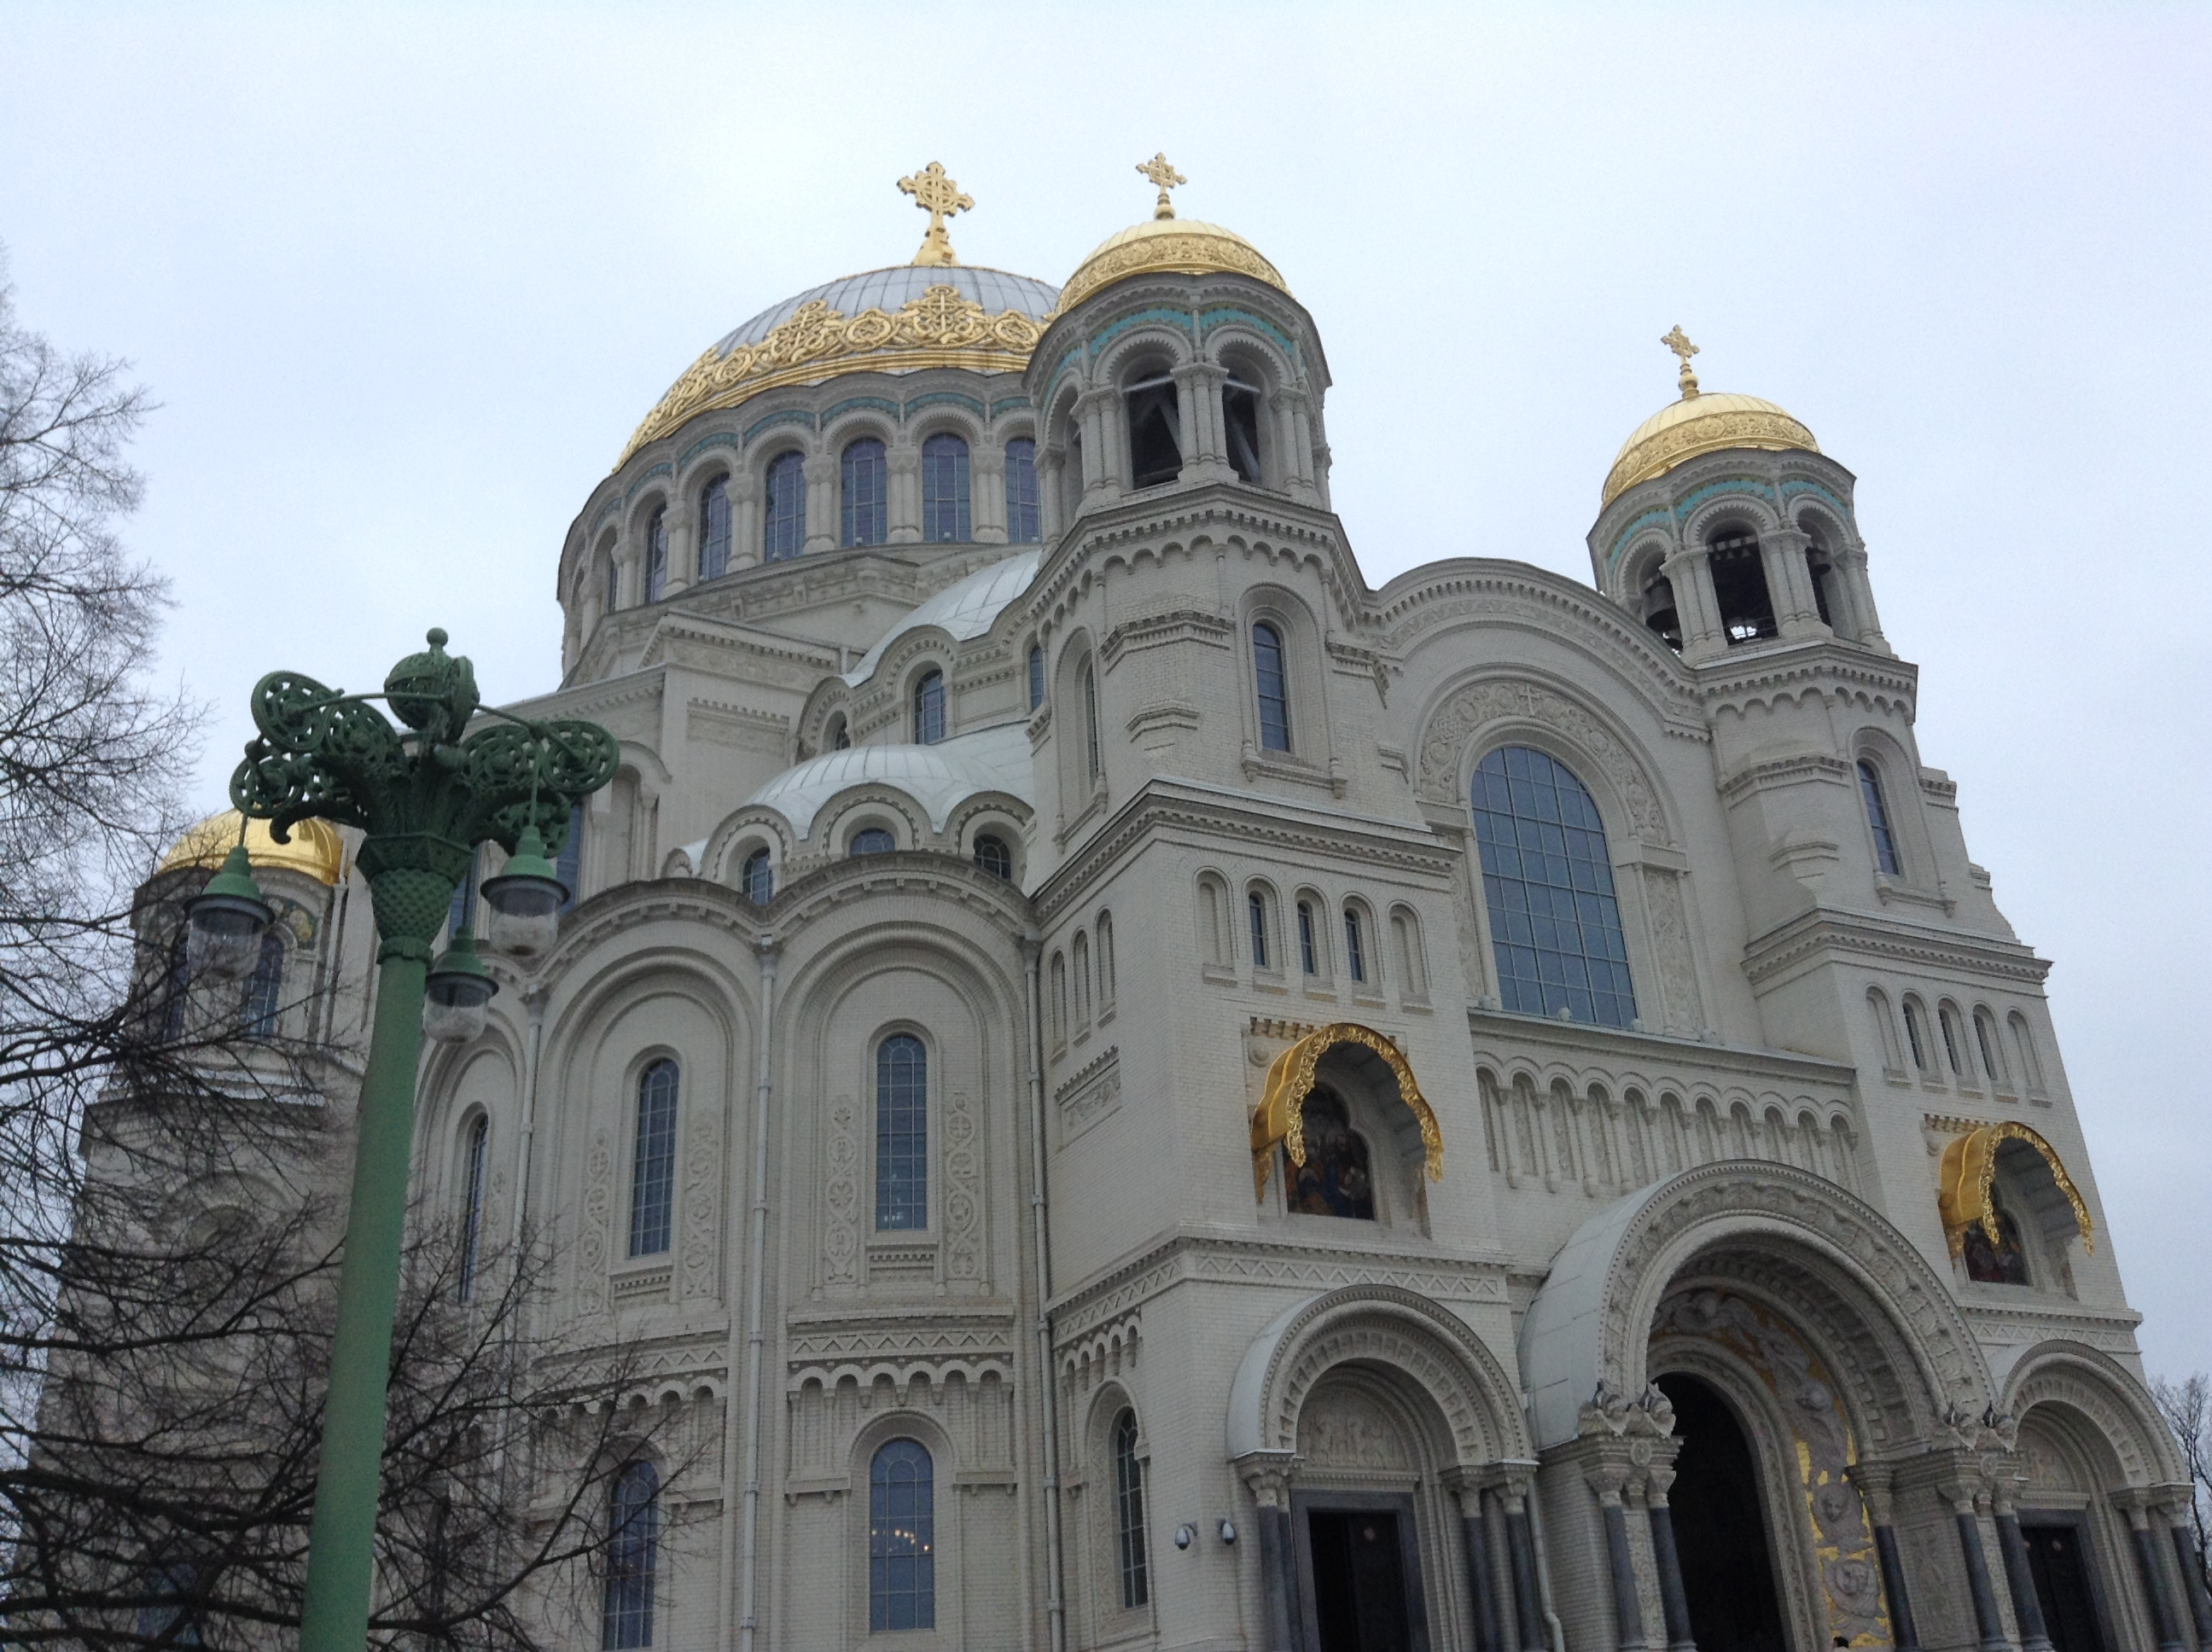 The Naval cathedral of Saint Nicholas in Kronstadt. Source: Ajay Kamalakaran